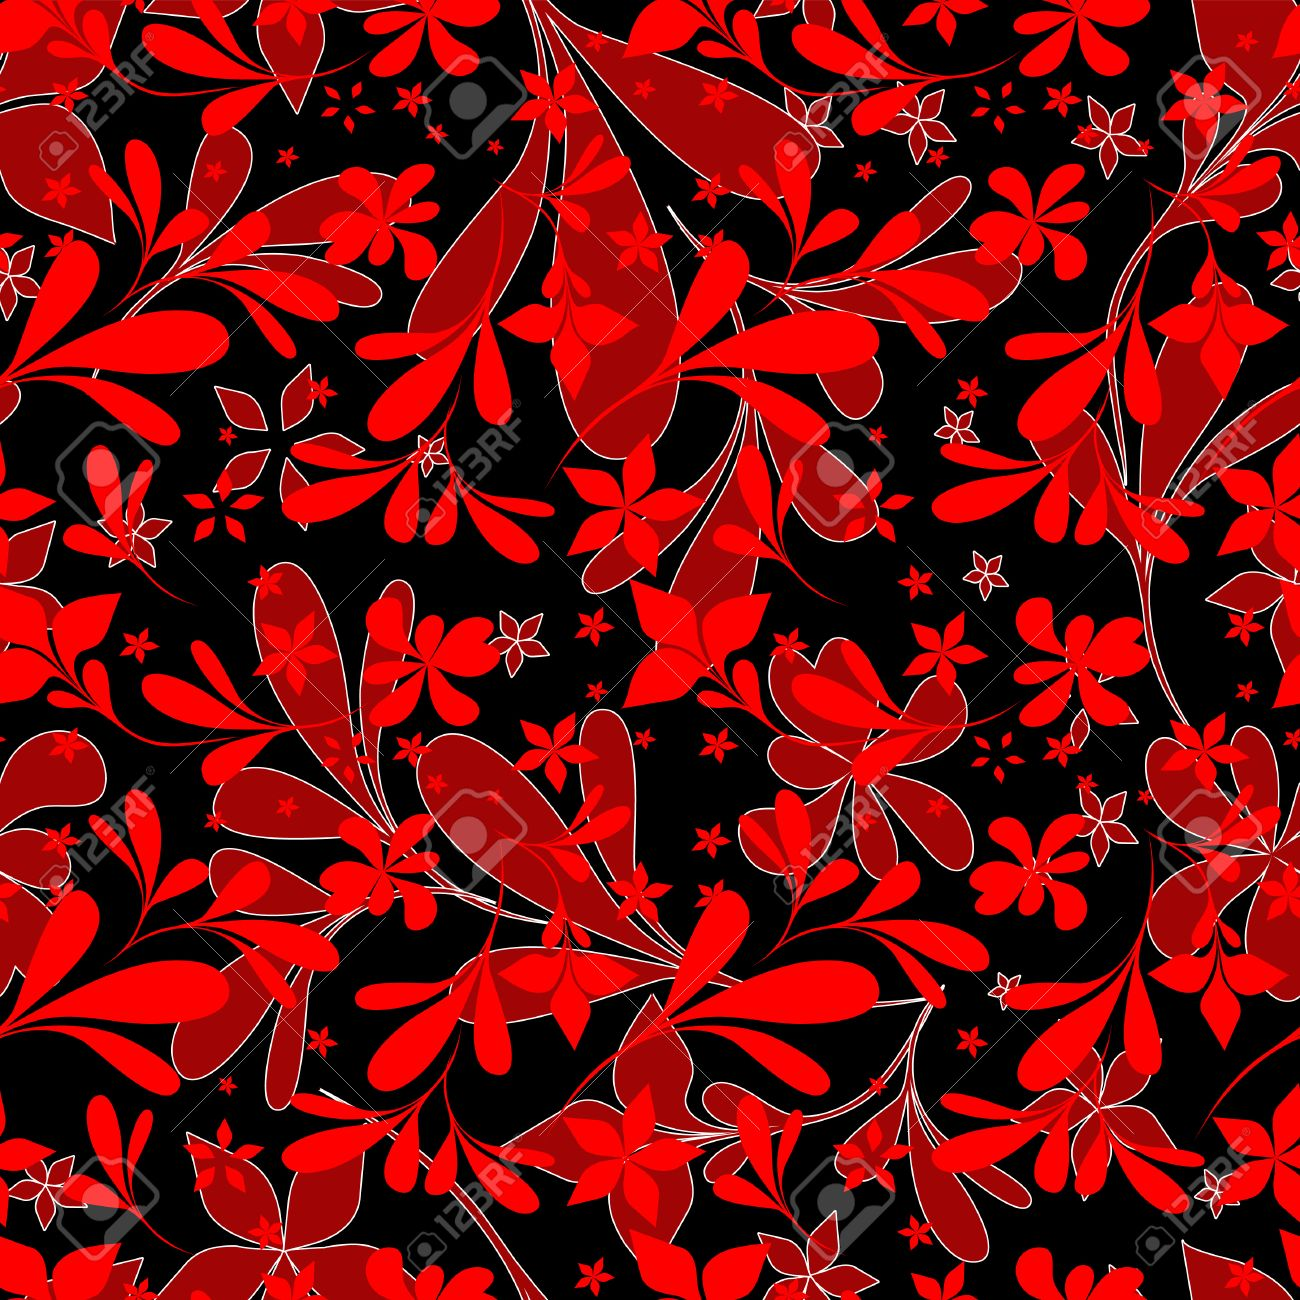 Seamless Black Red Flower Wallpaper